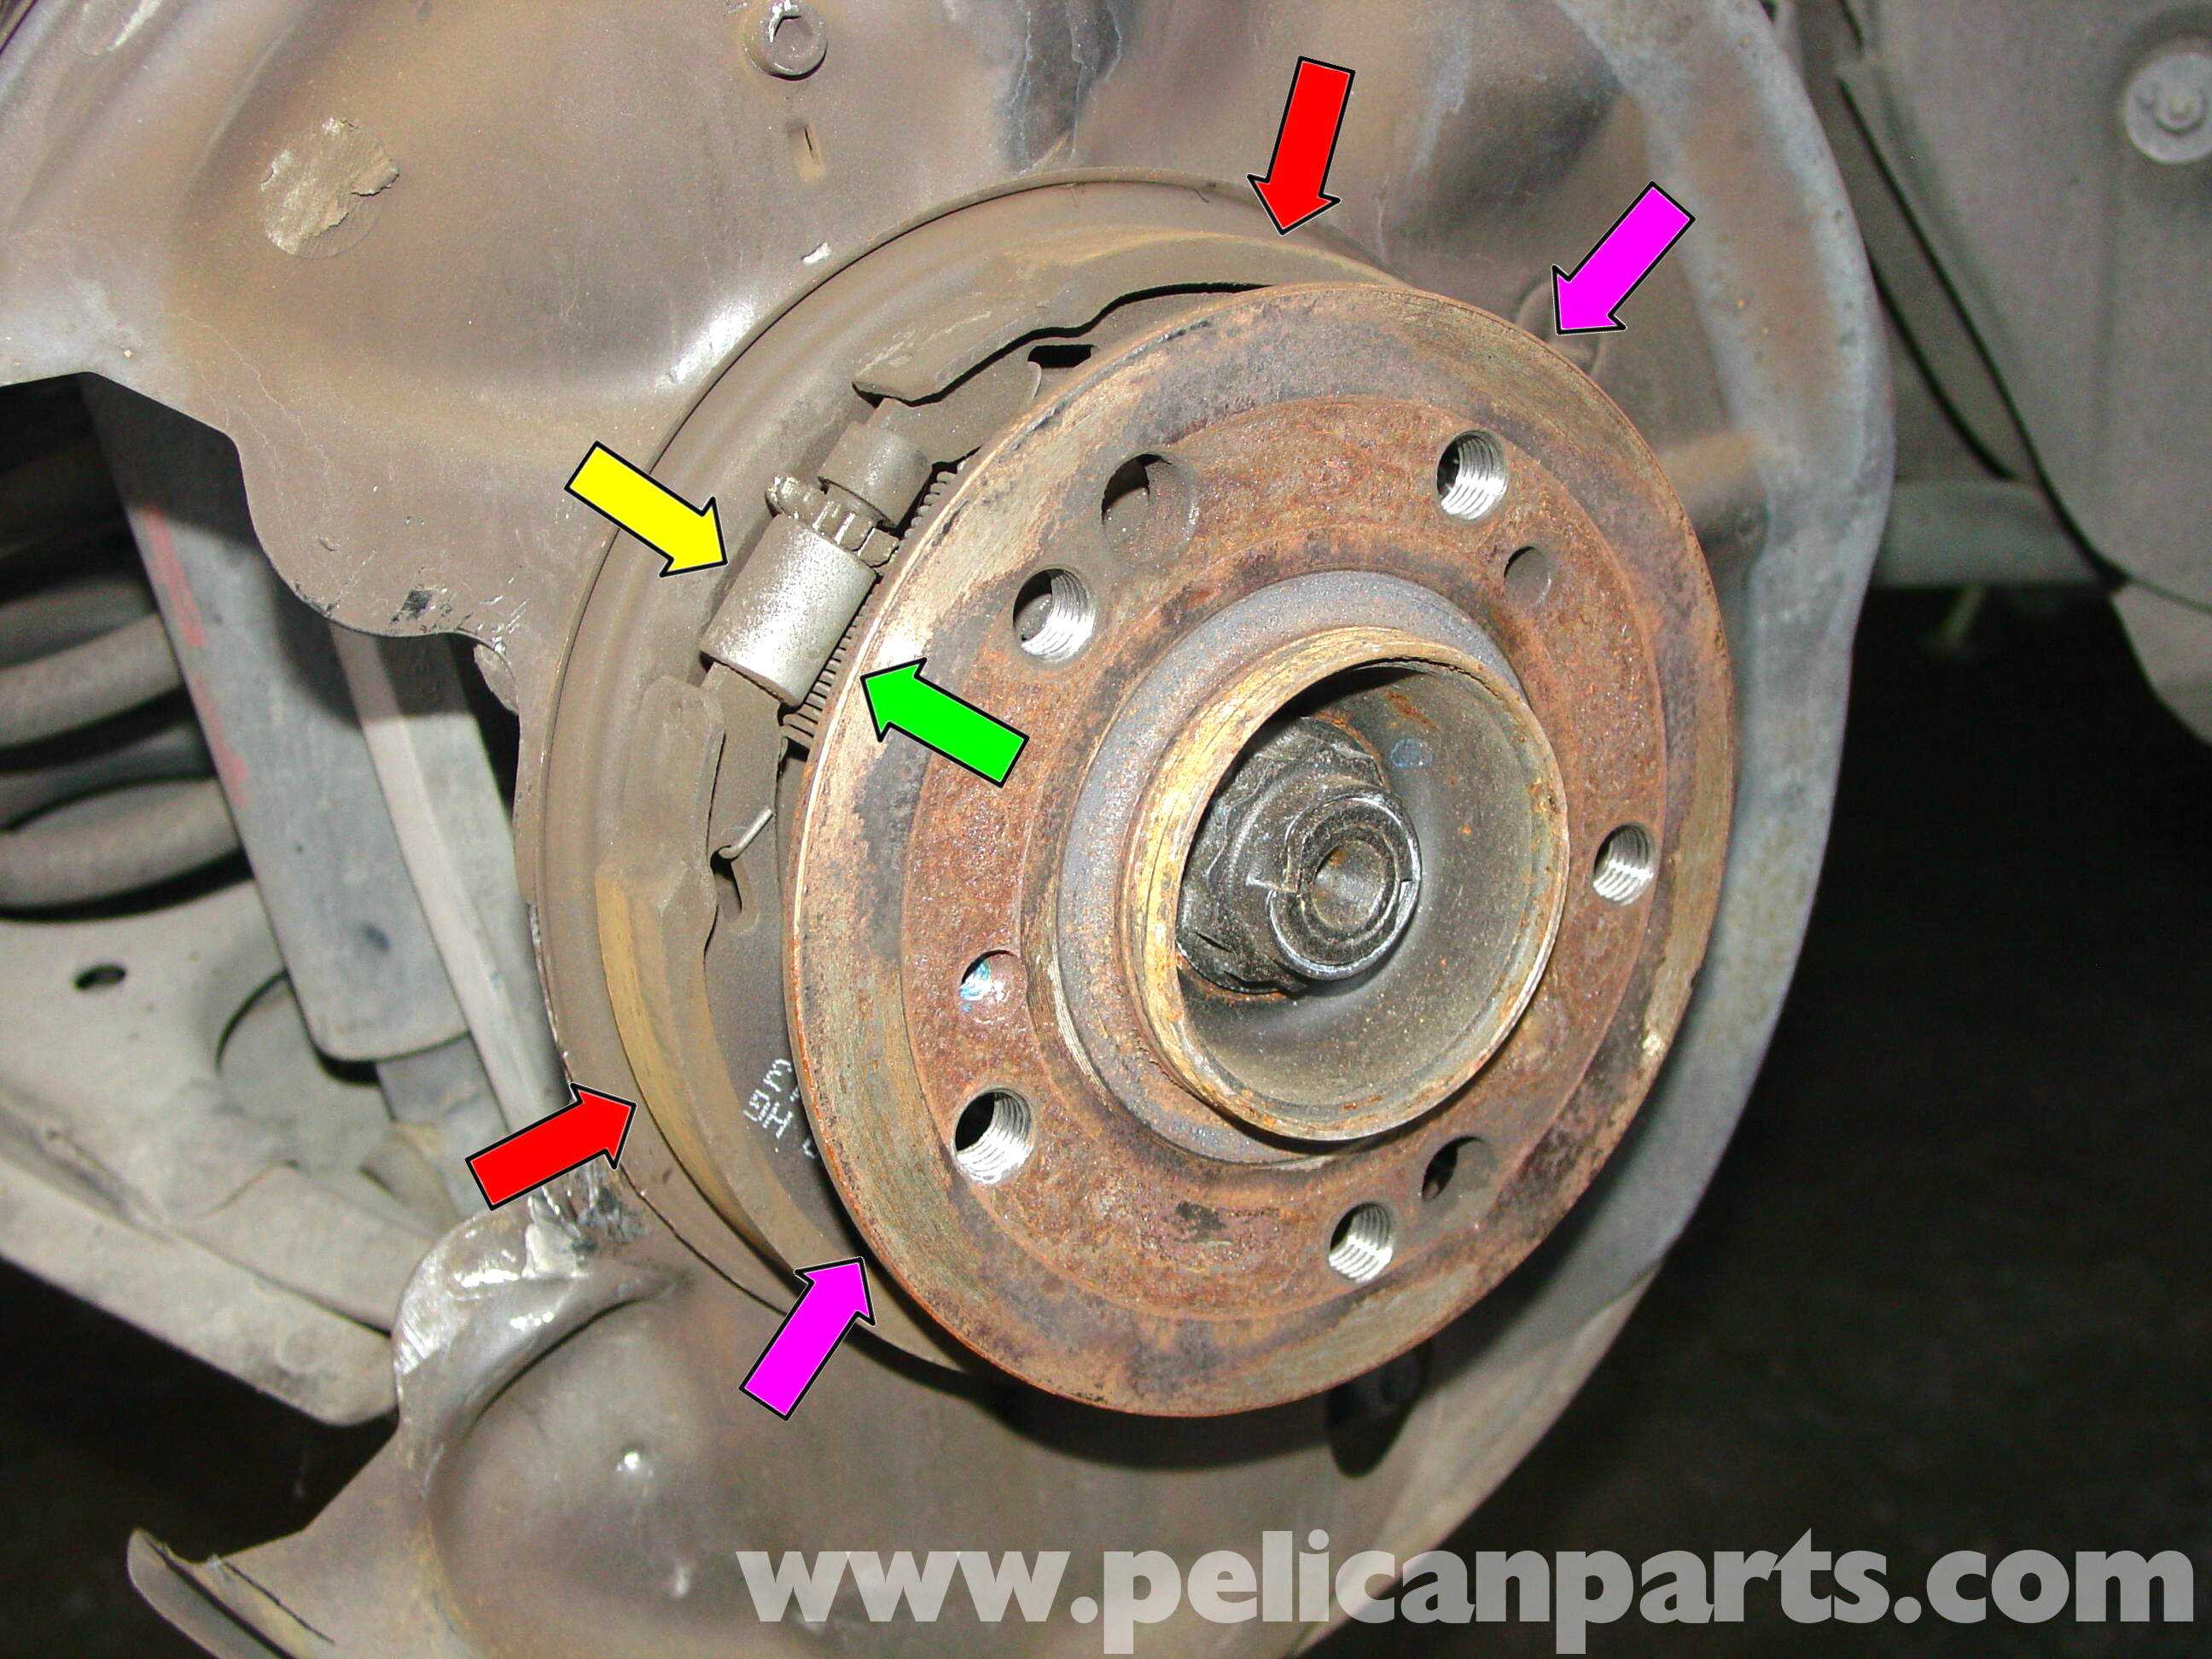 How to change front brake pads on 2006 mercedes c230 for Mercedes benz rotors replacement